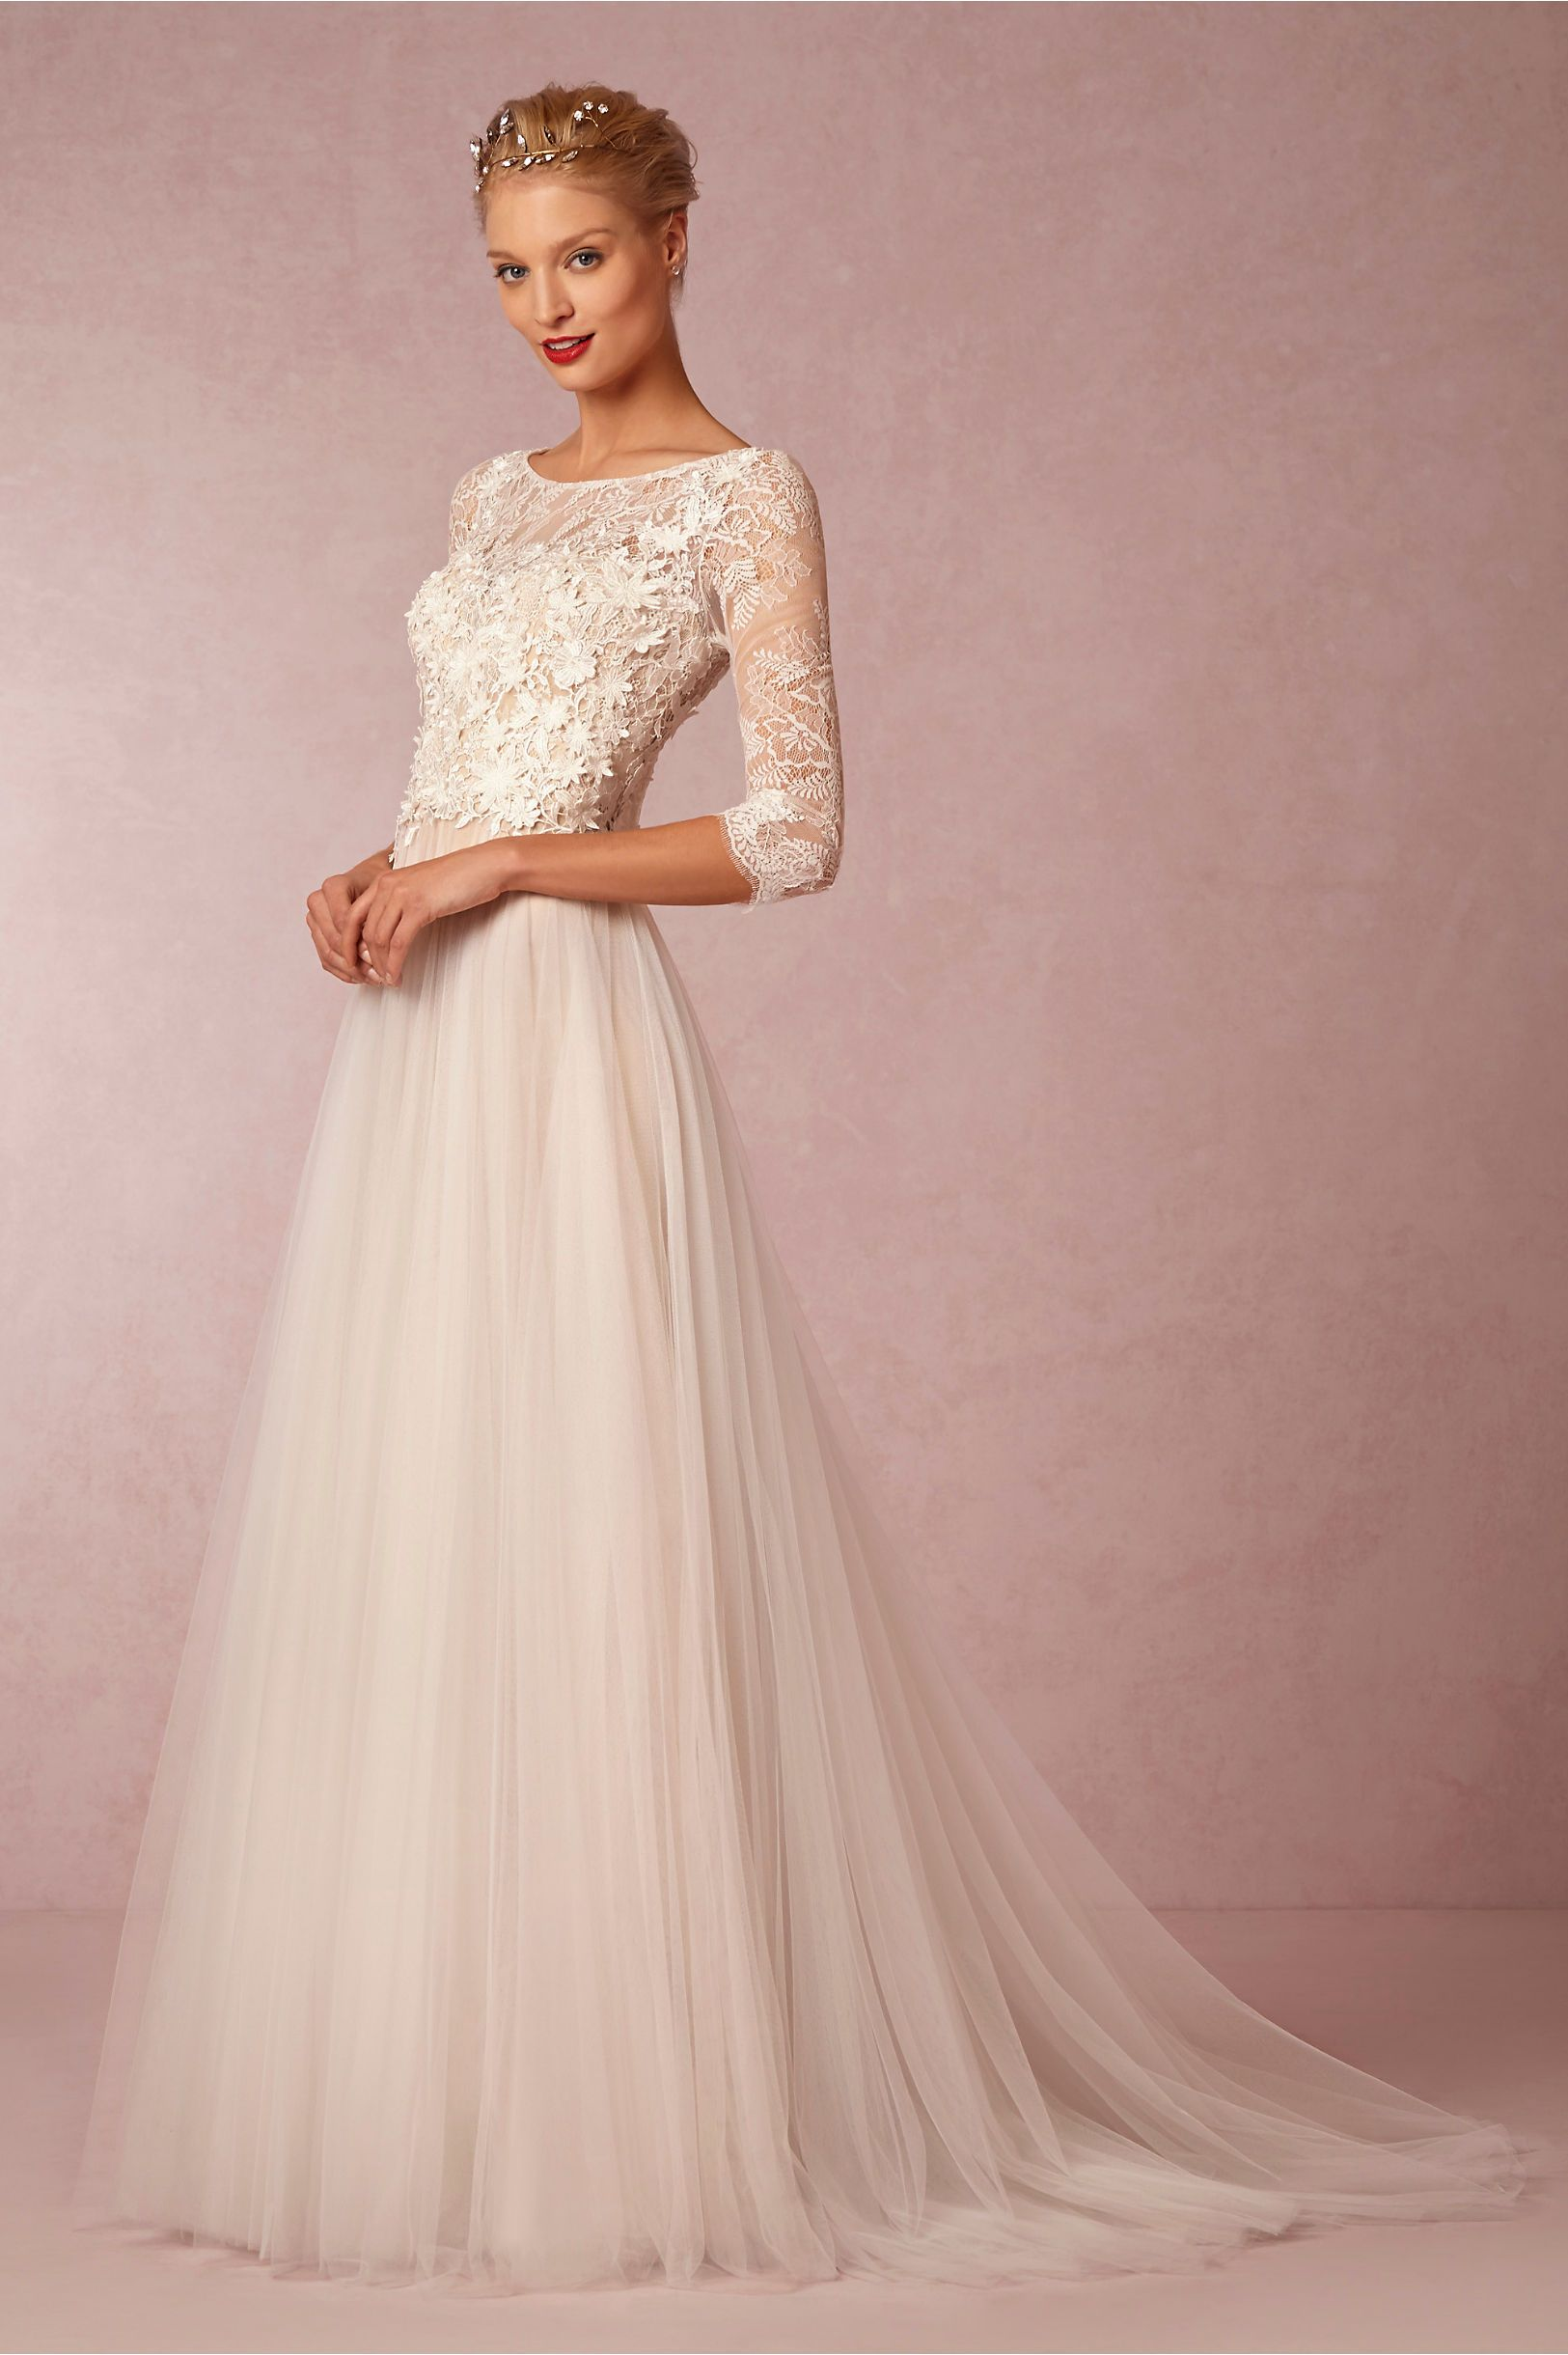 Amelie Gown in New at BHLDN $1640 | Fashion | Pinterest | Vestidos ...